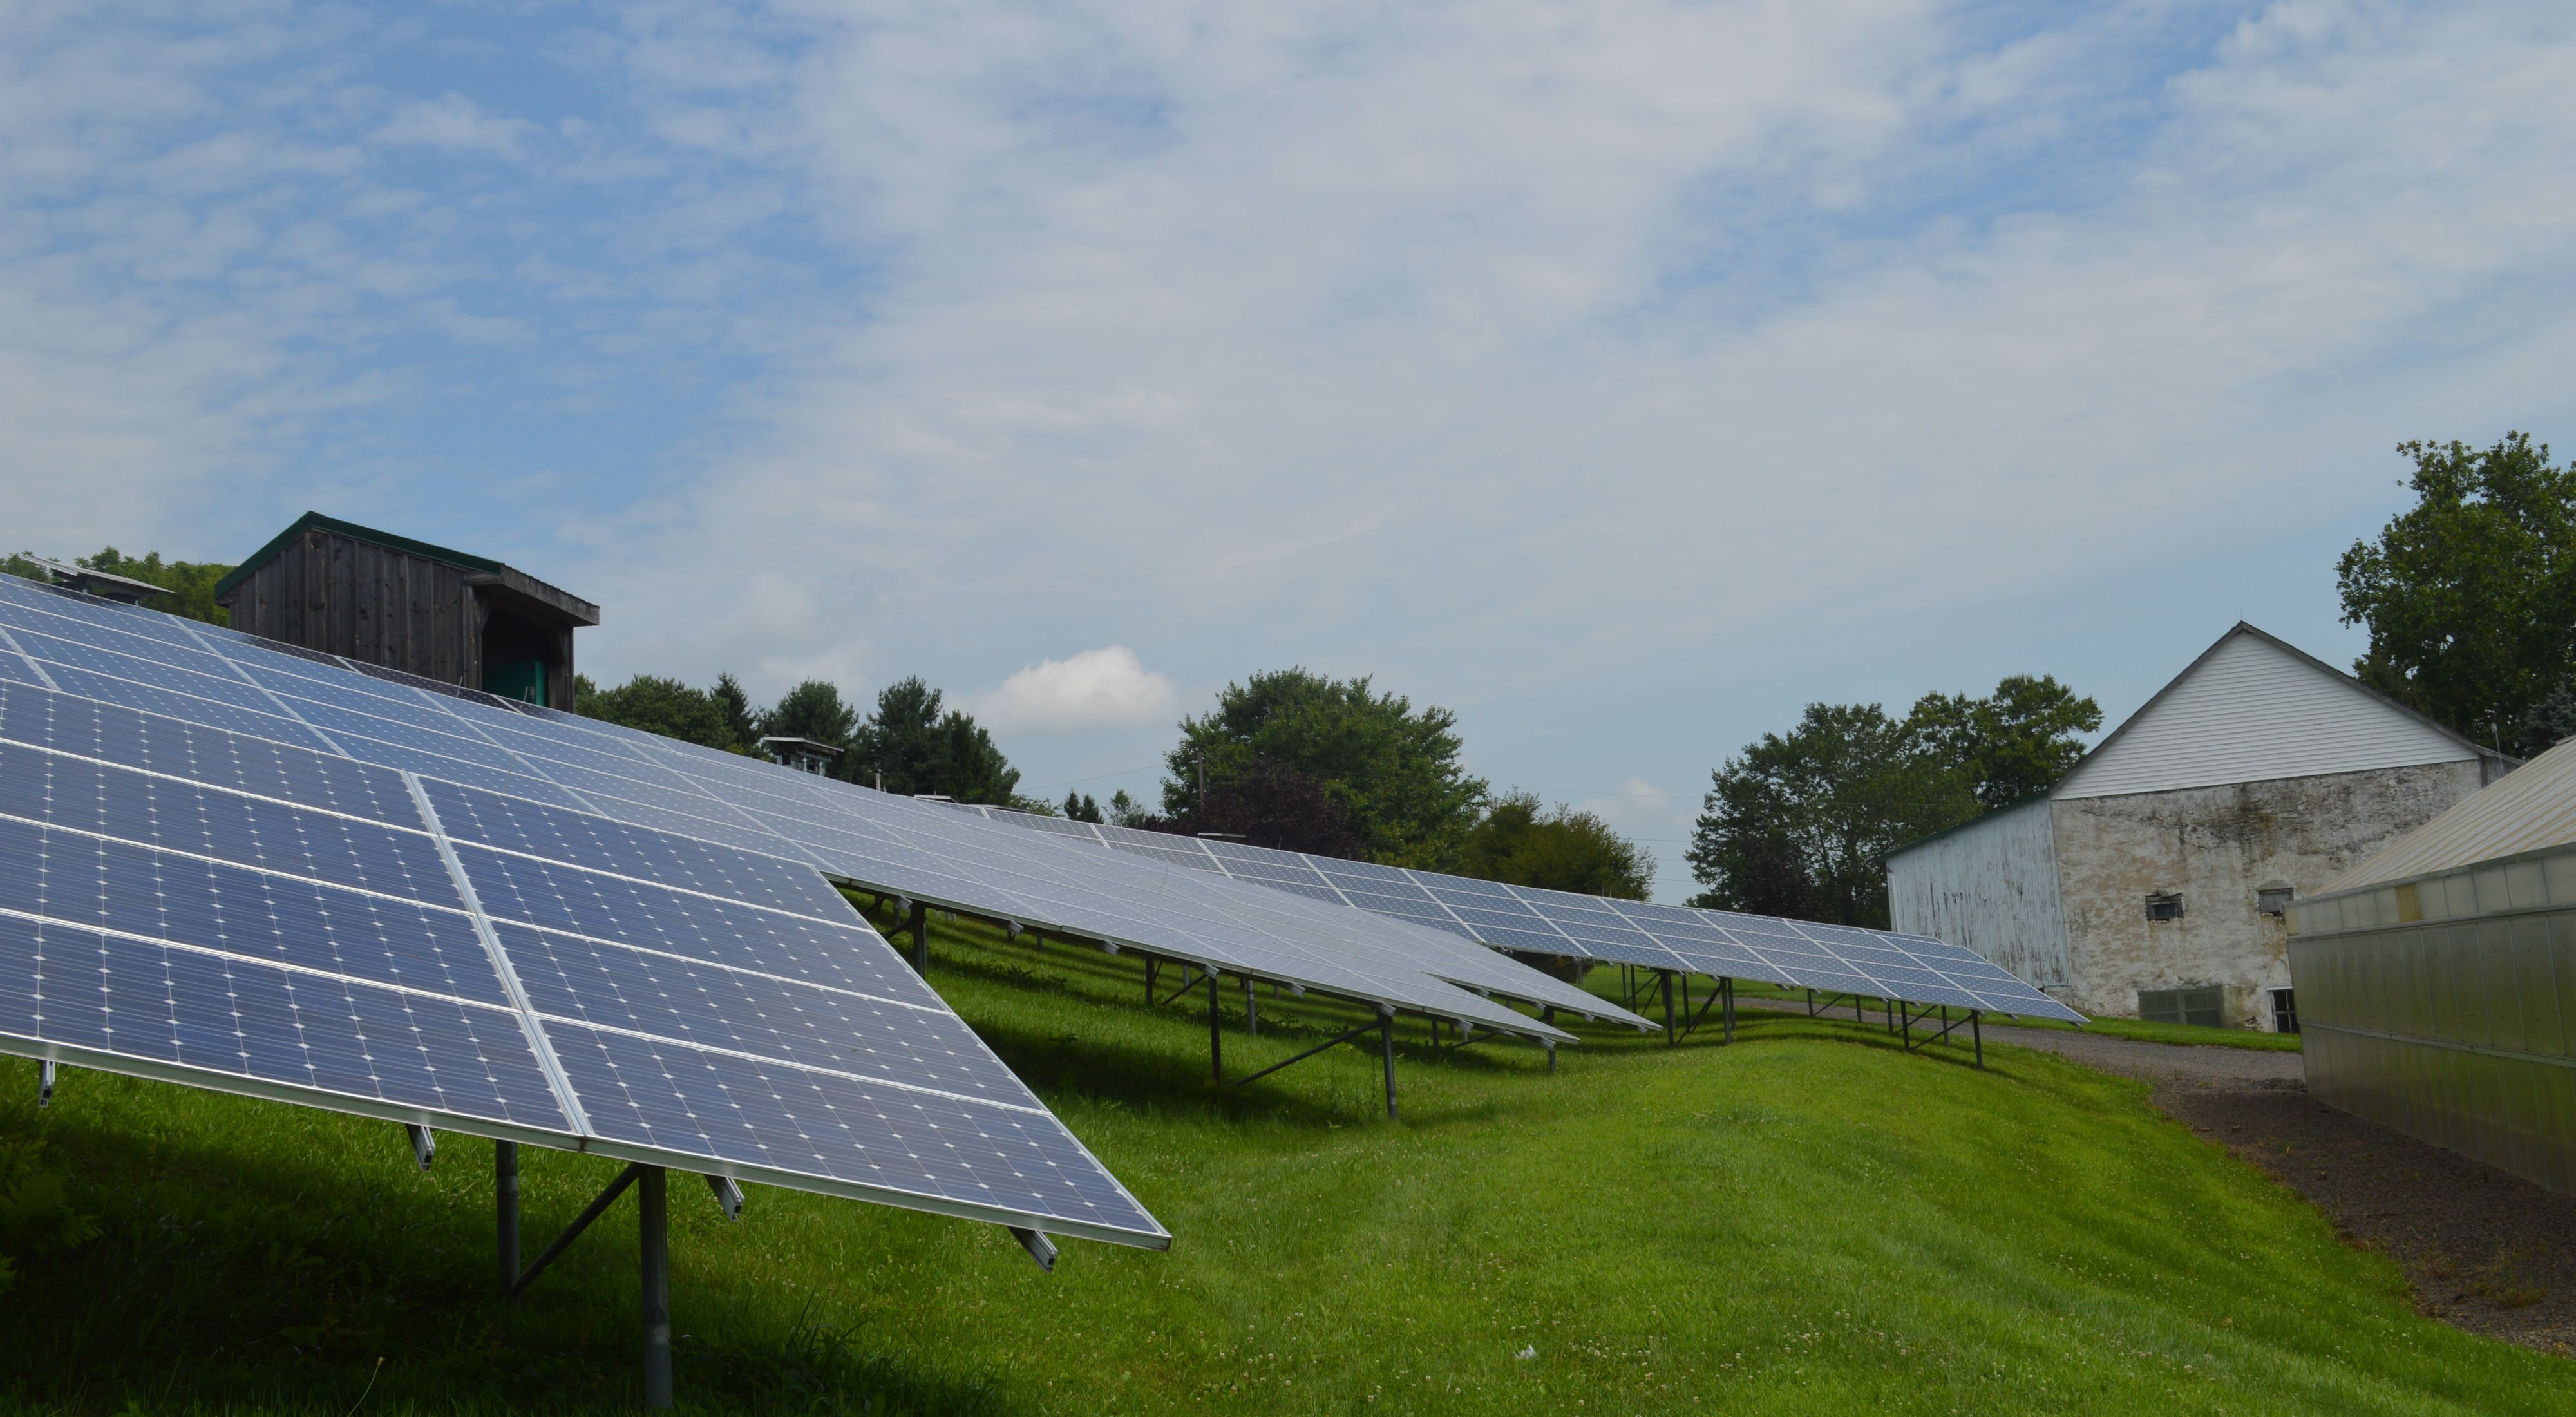 Solar panels on grassy foreground, barn in background.